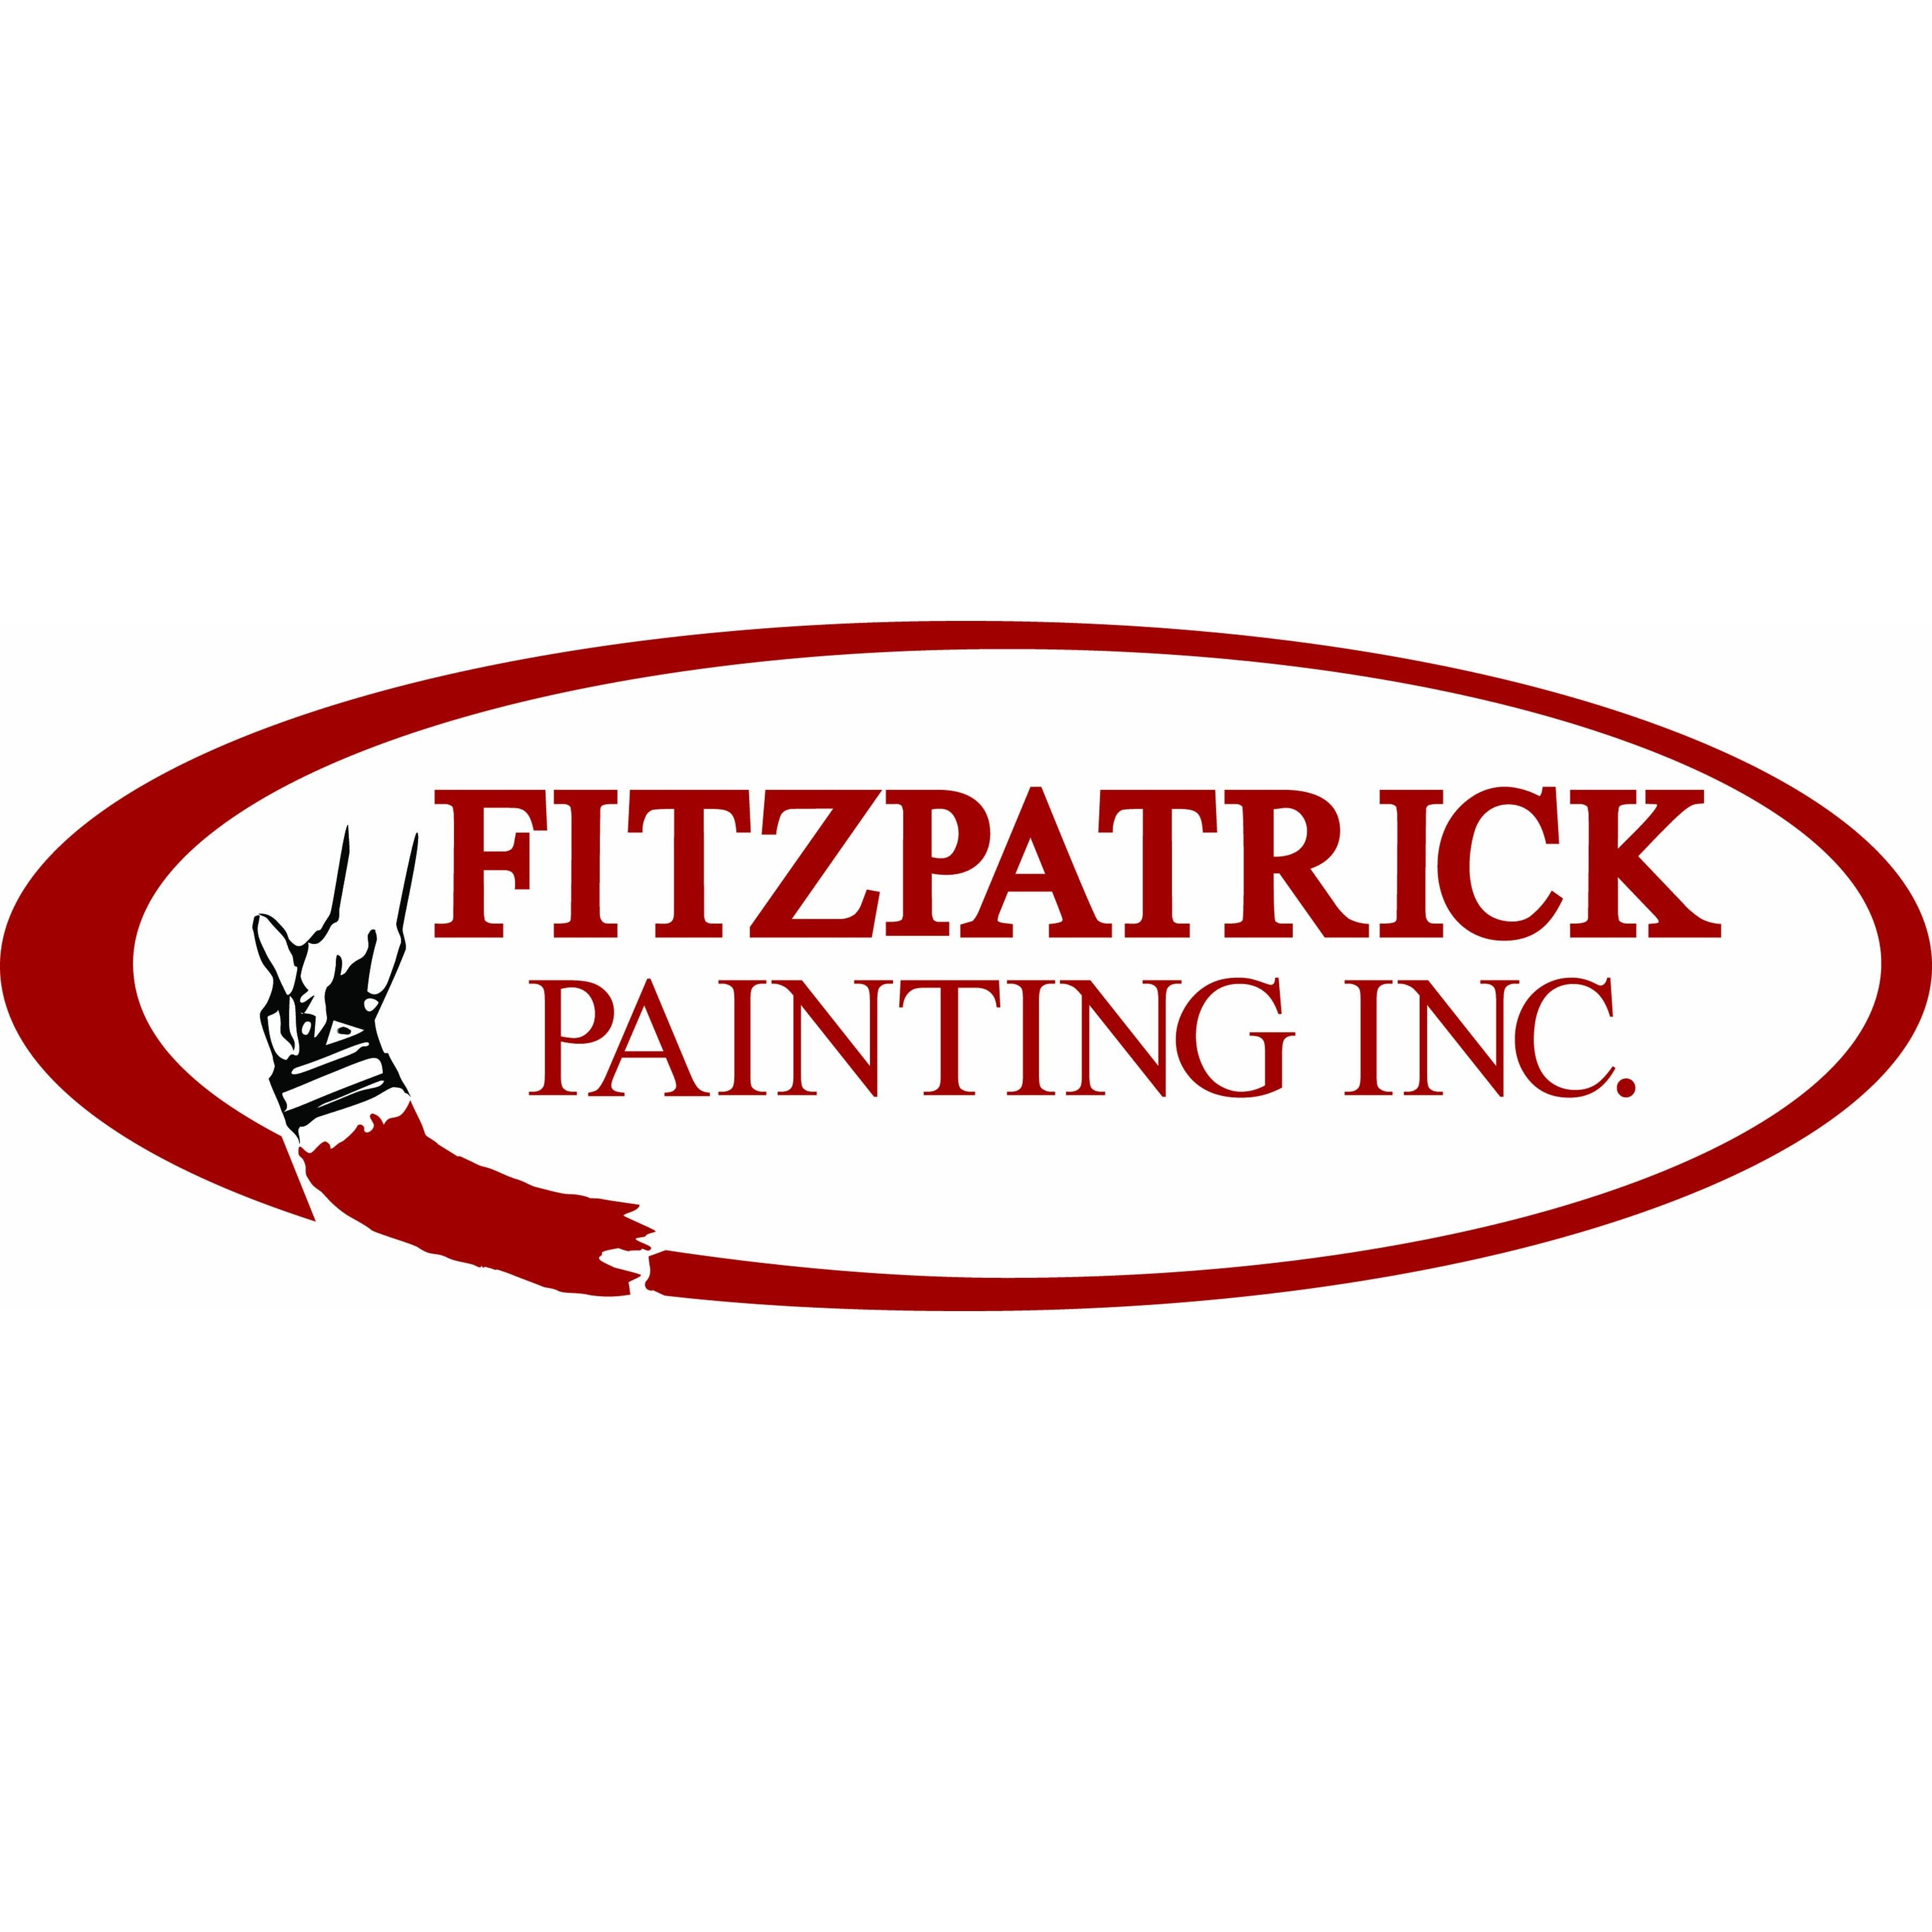 image of the Fitzpatrick Painting Inc